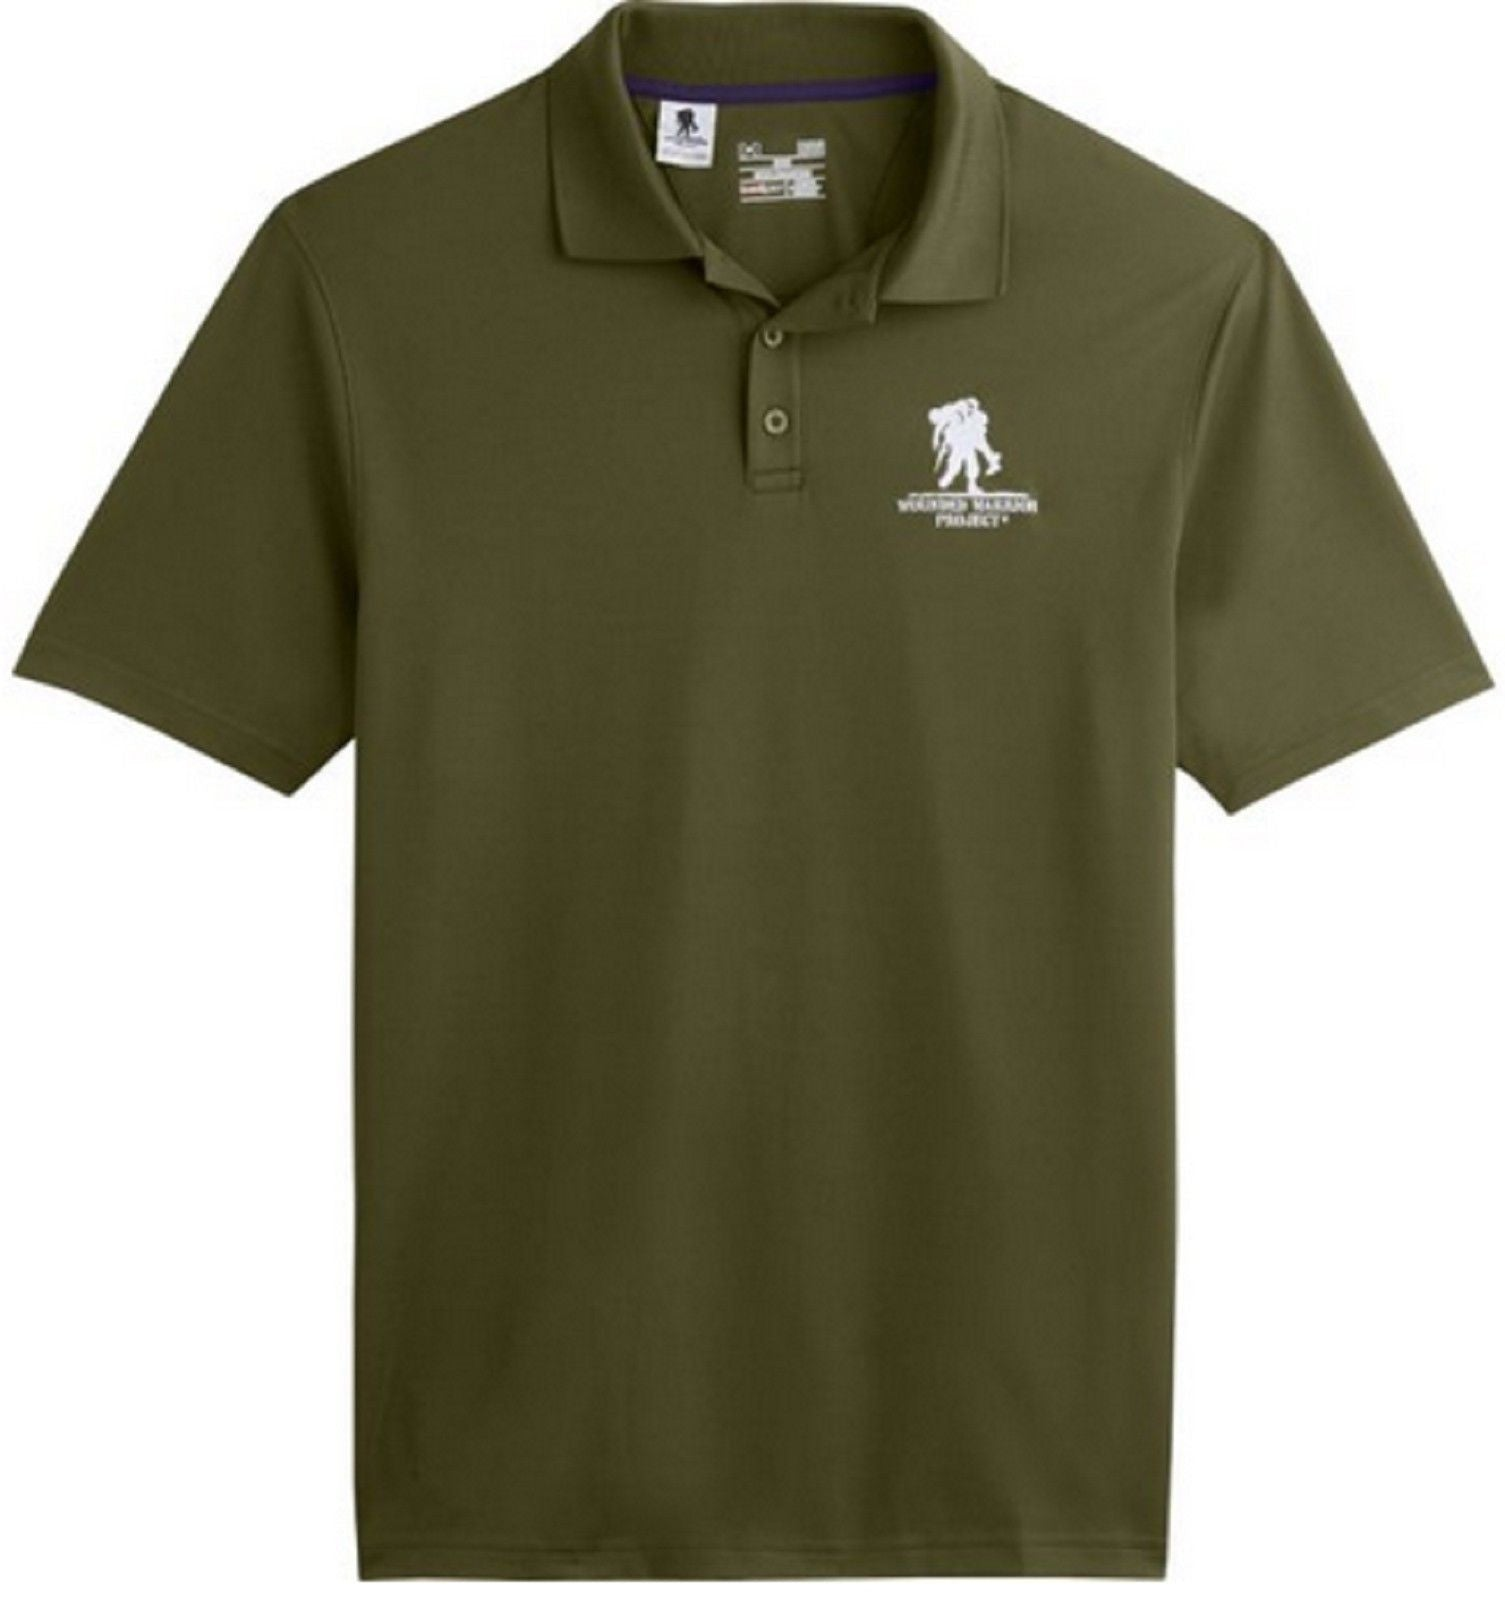 3d1652cf ... Under Armour Performance Polo Shirt Wounded Warrior Project Collared  Golf Shirts Purple Green Gray Black